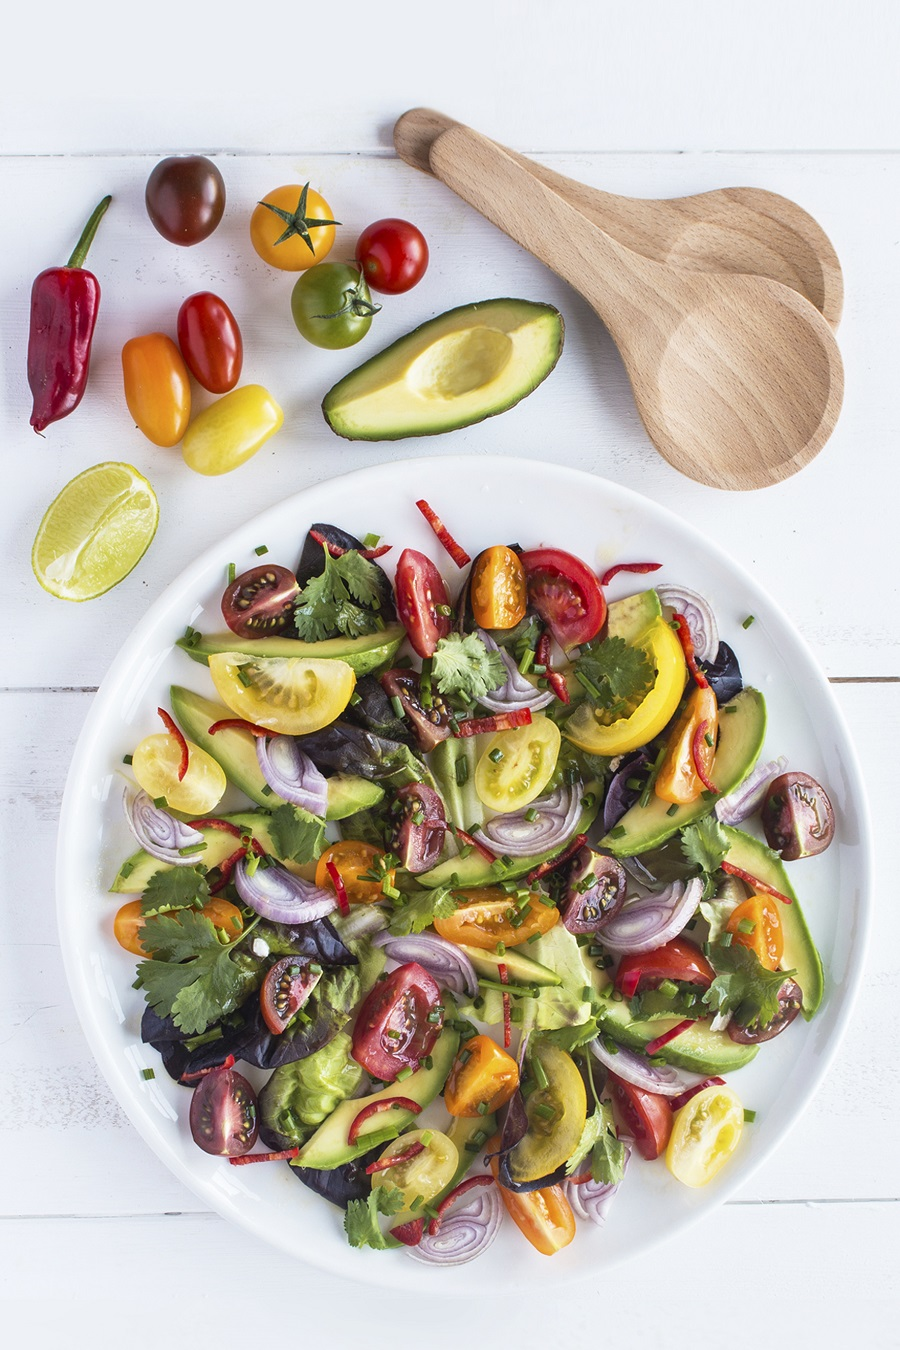 Isle of Wight Tomato Avocado And Red Onion Salad With A Lime And Chilli Dressing.